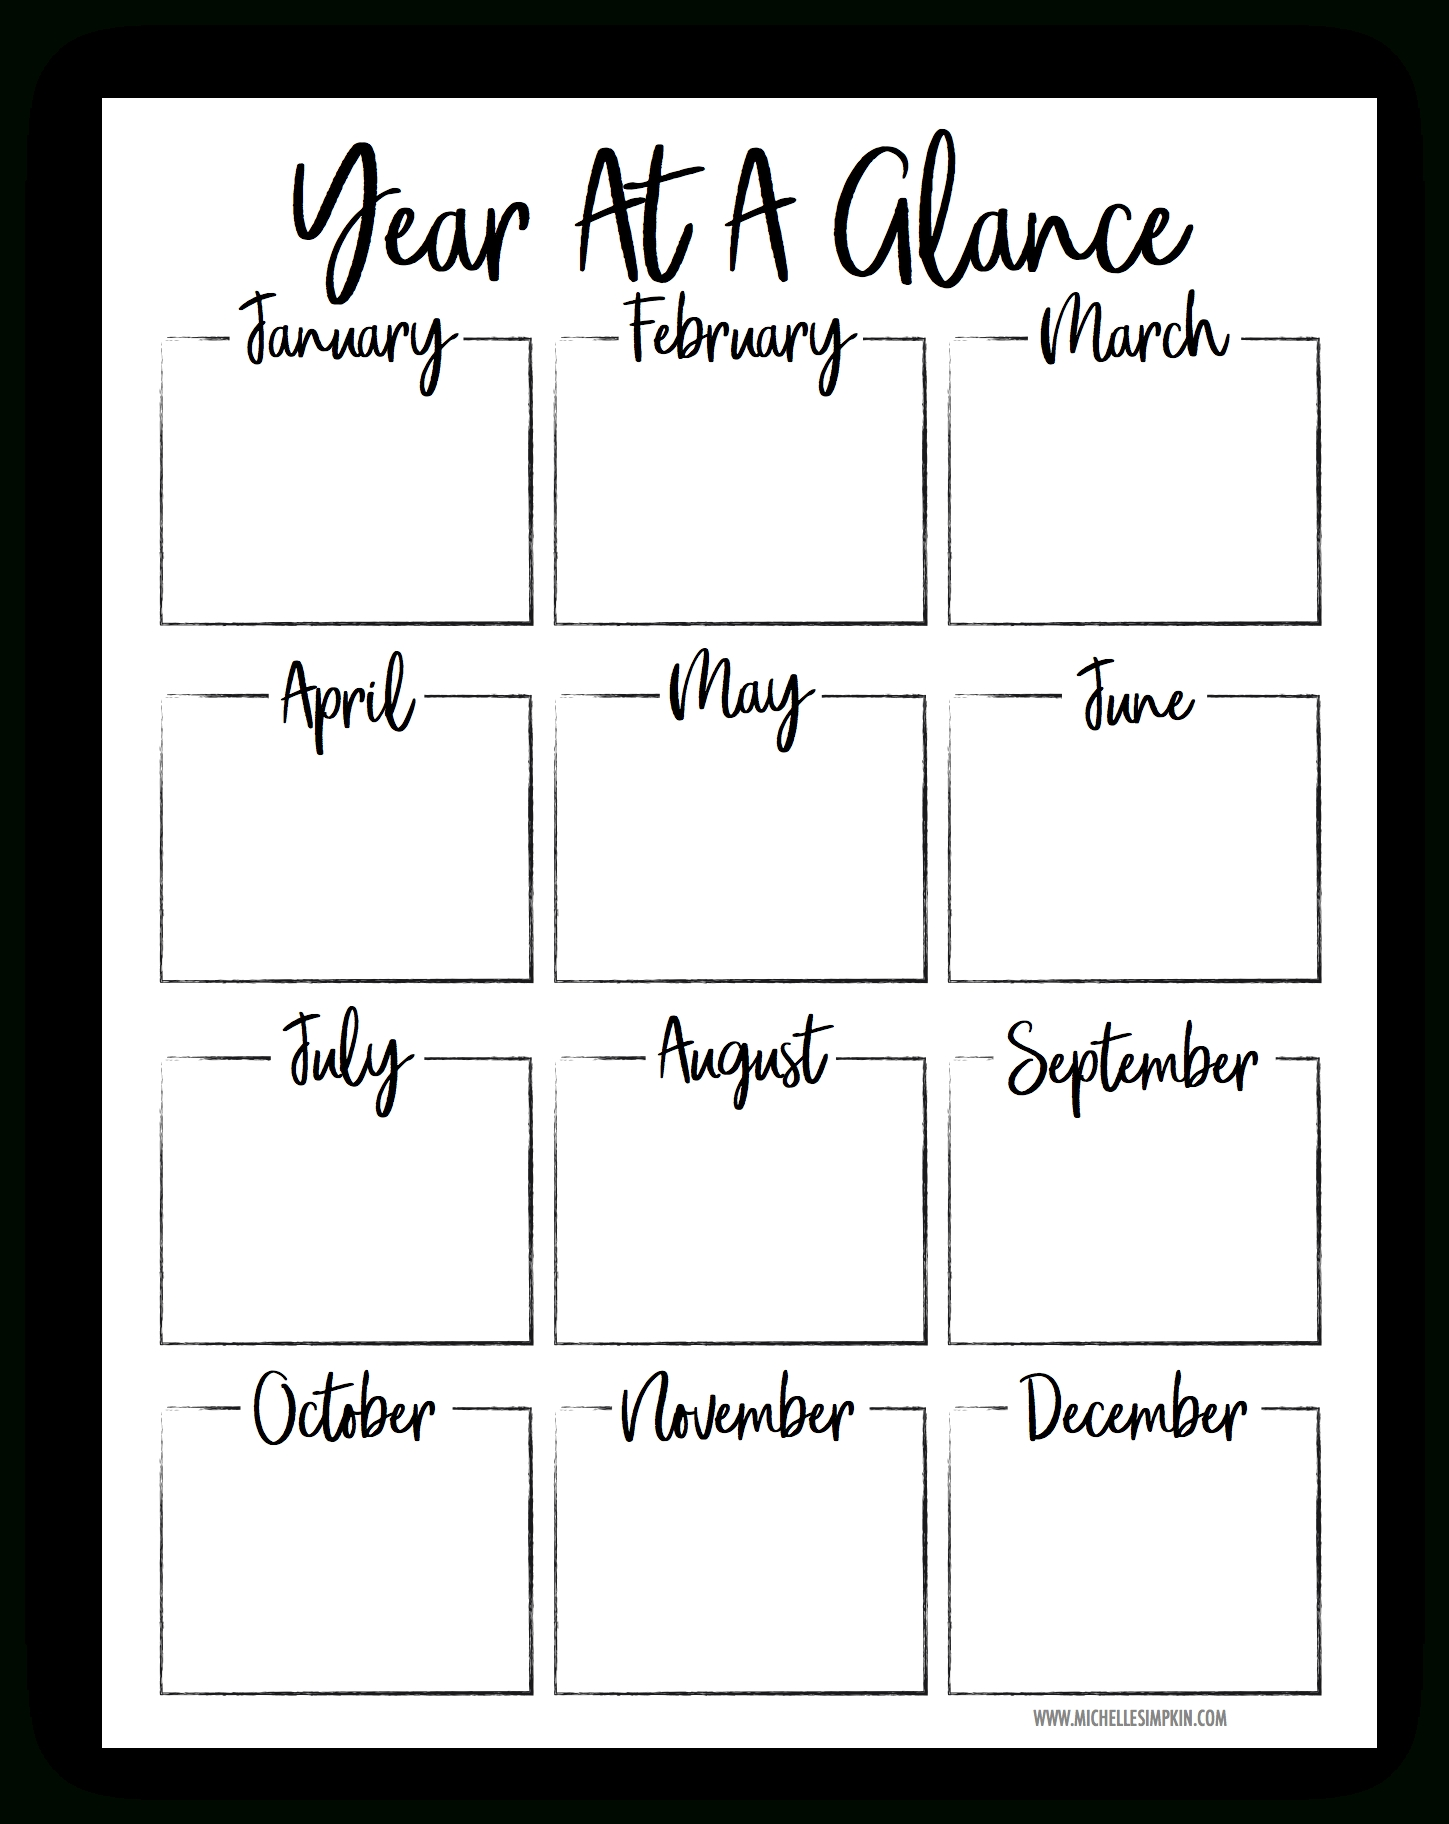 Year At A Glance Printable | Task Lists | Templates Printable Free with regard to Year At A Glance Printable Template